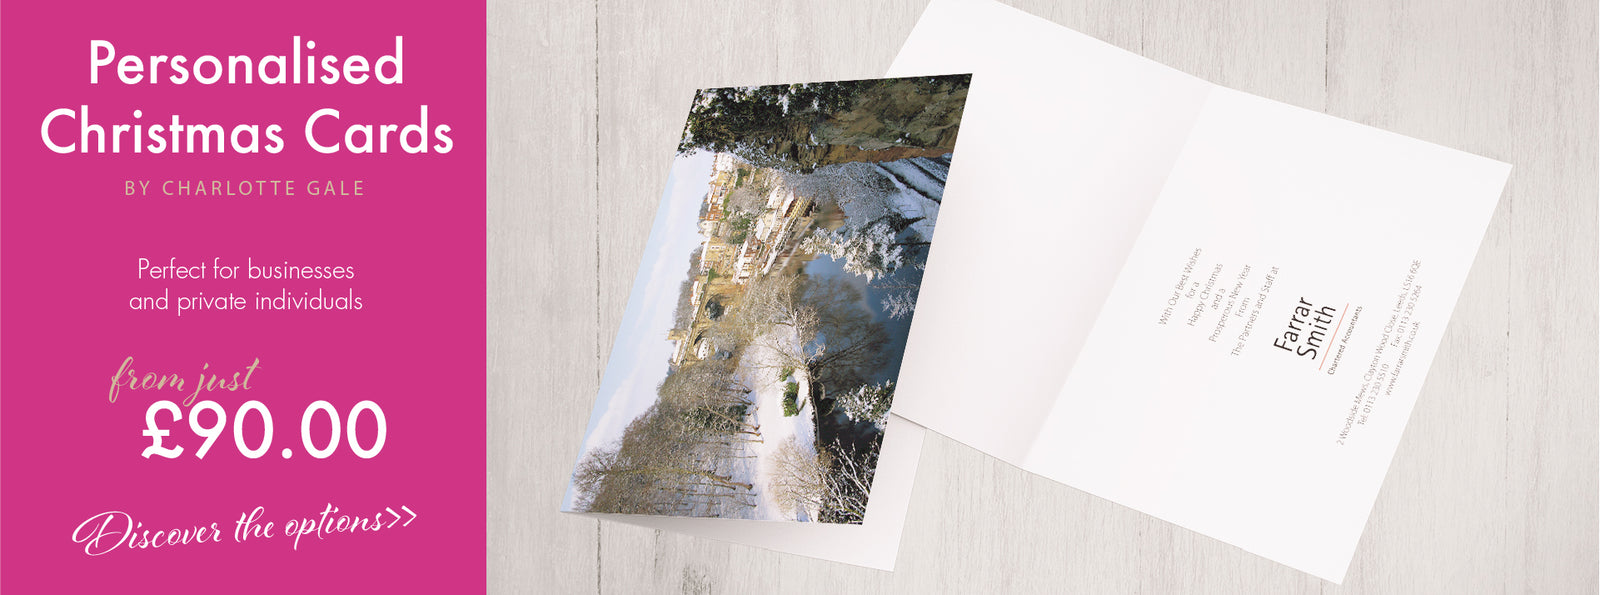 Yorkshire Corporate Christmas Cards By Charlotte Gale Pictur Esque